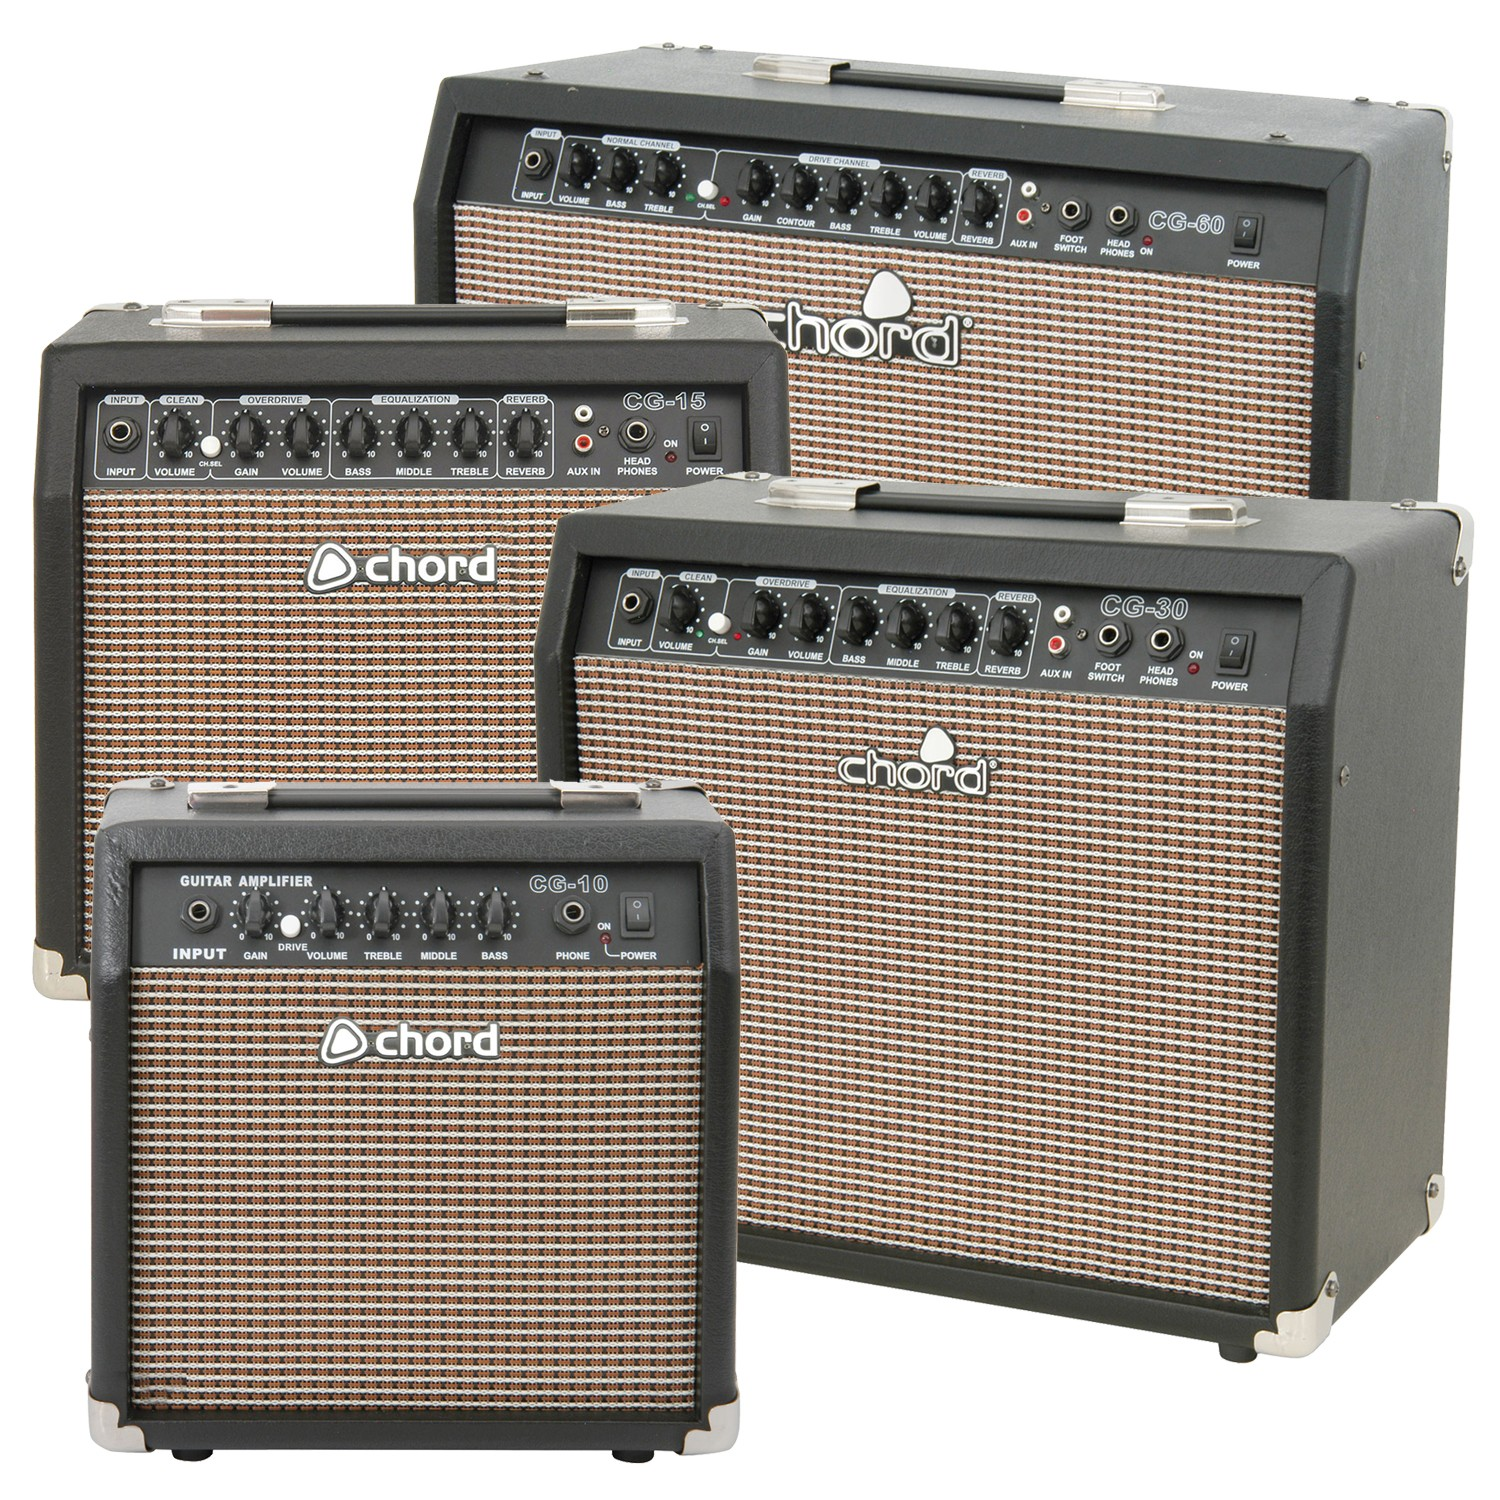 chord cg series guitar amplifiers sound services. Black Bedroom Furniture Sets. Home Design Ideas